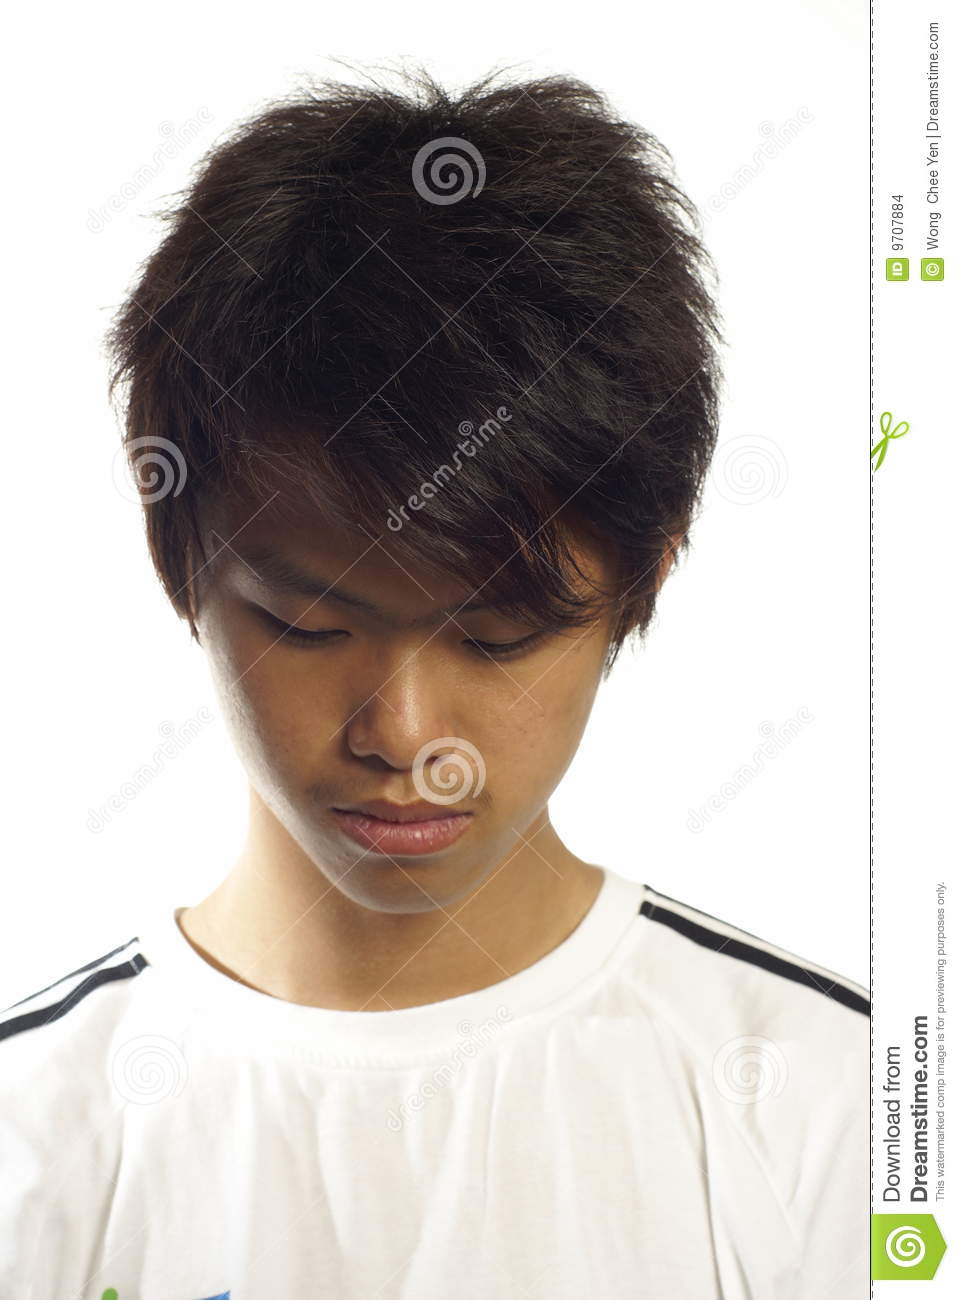 Asian Teen Guy Looking Down Stock Images - Image 9707884-1316